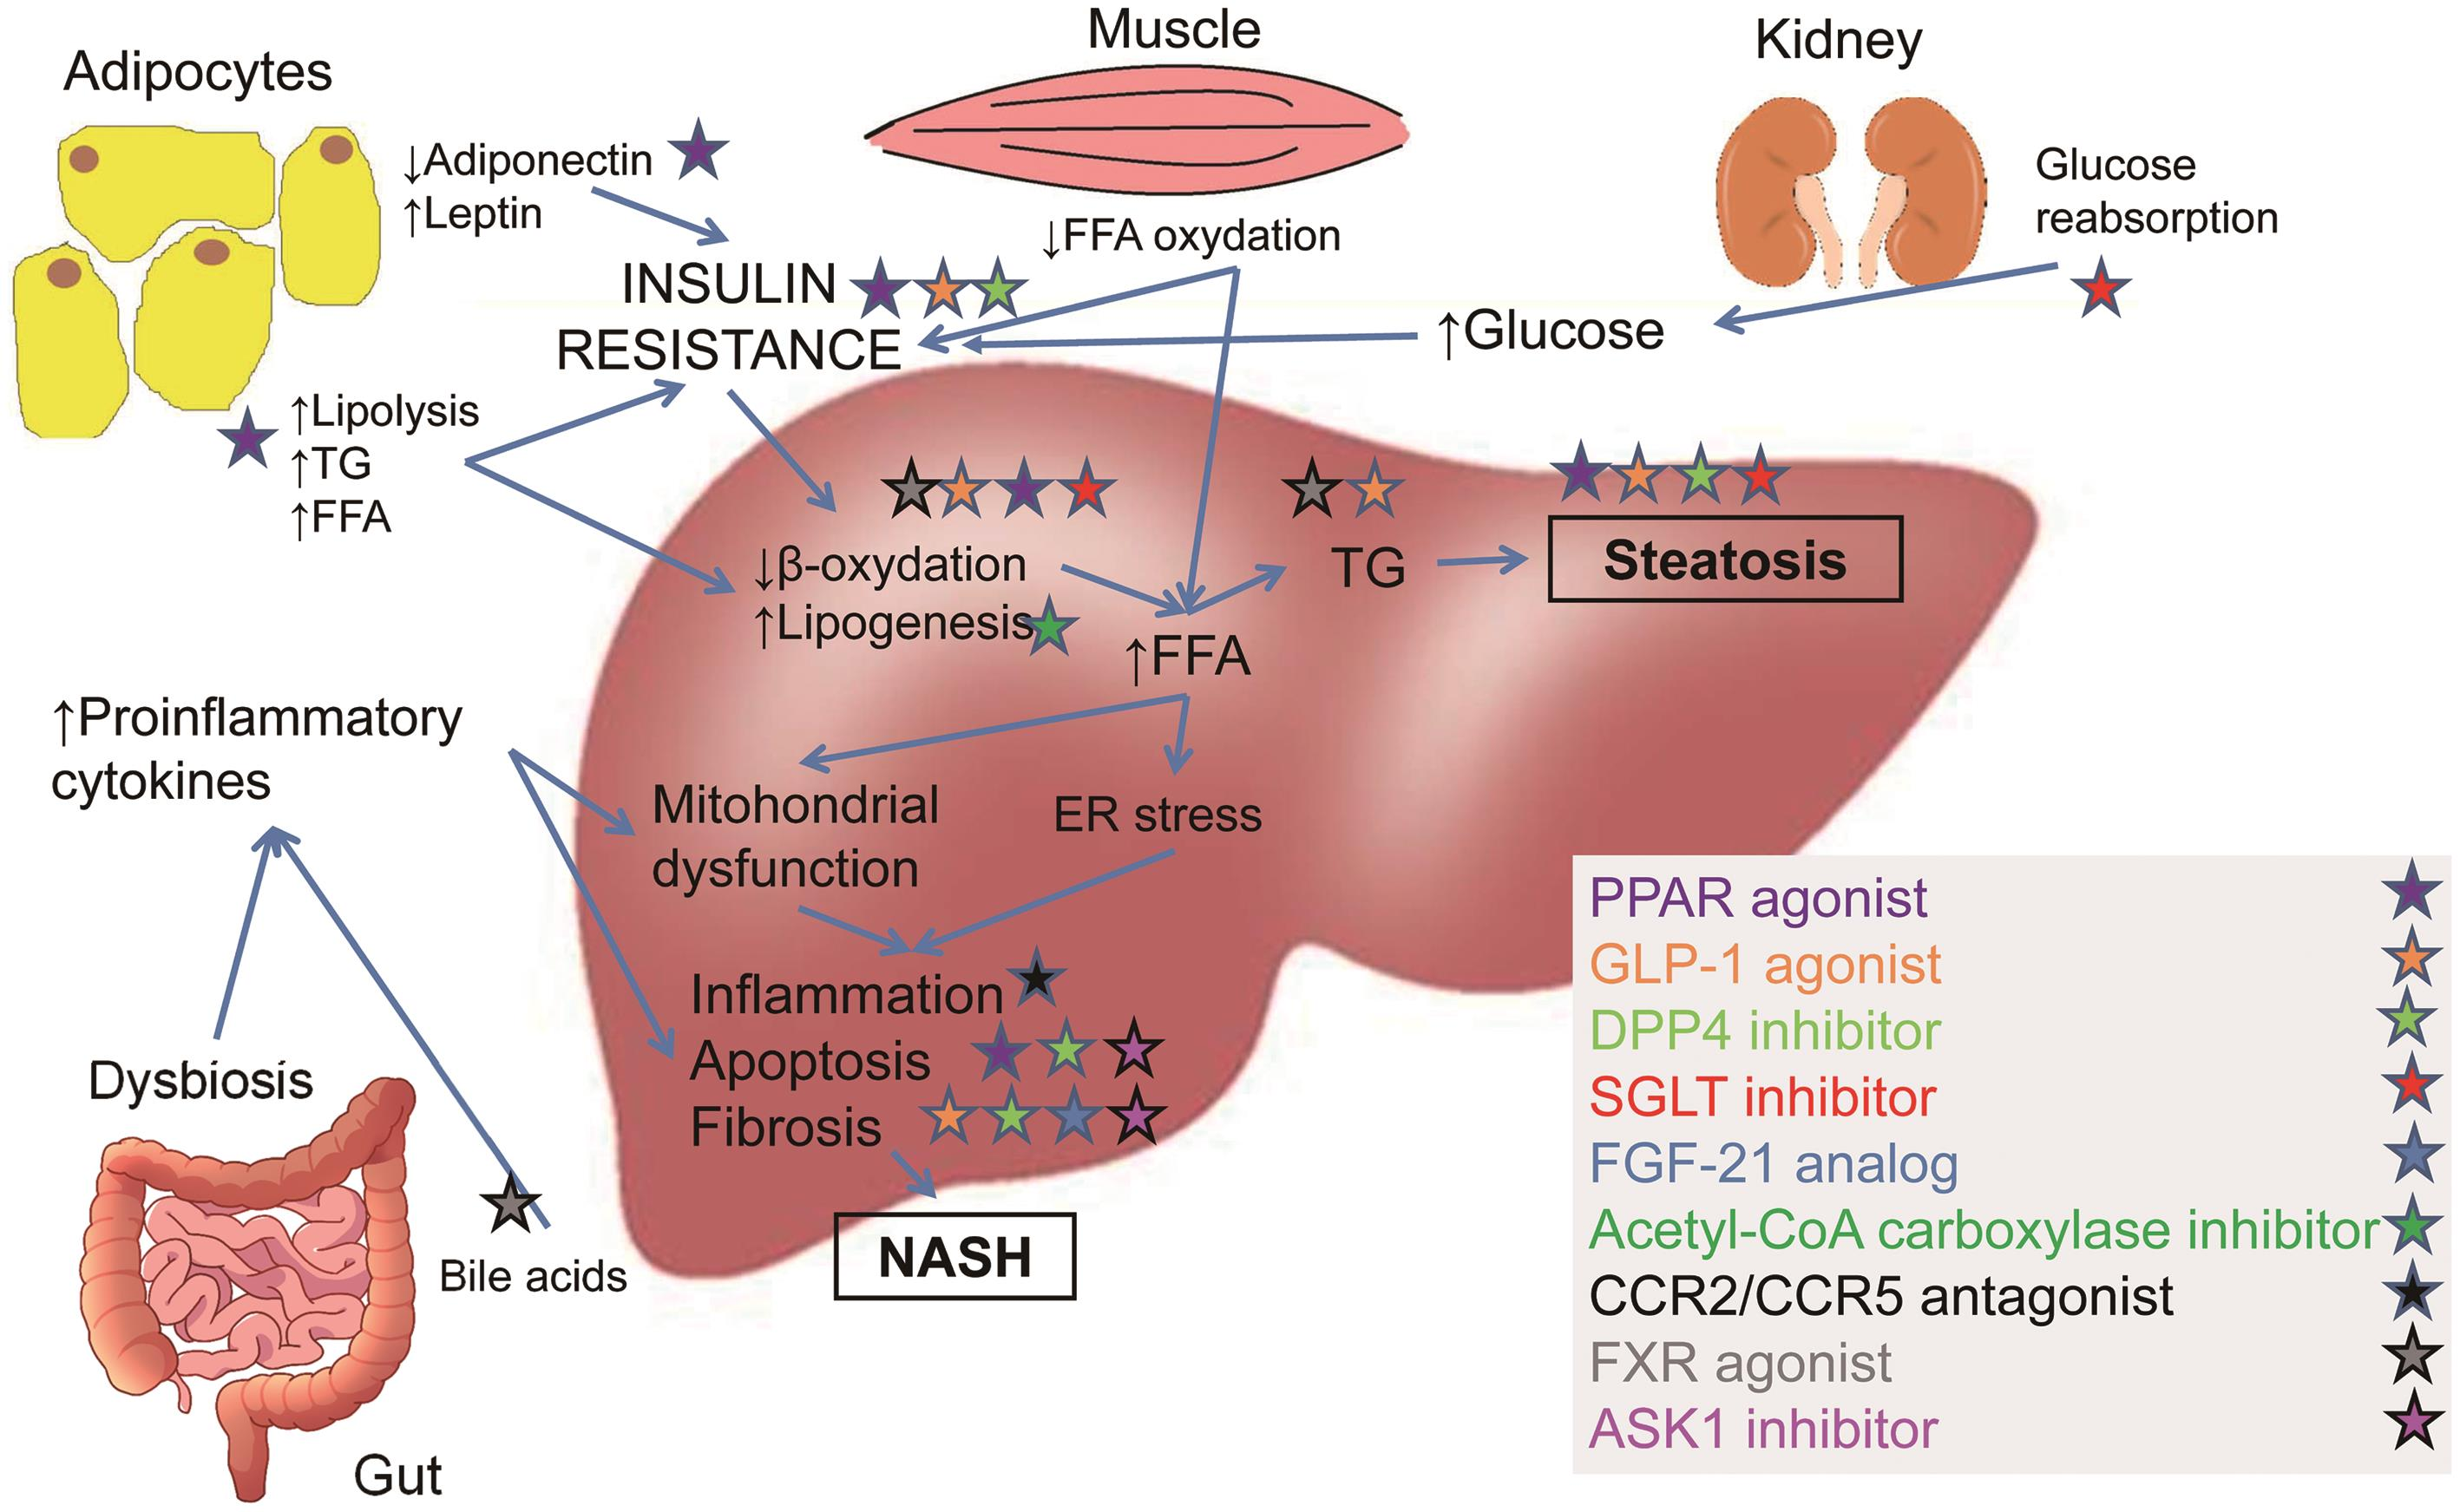 Proposed mechanisms of action of new agents for treatment of NASH.